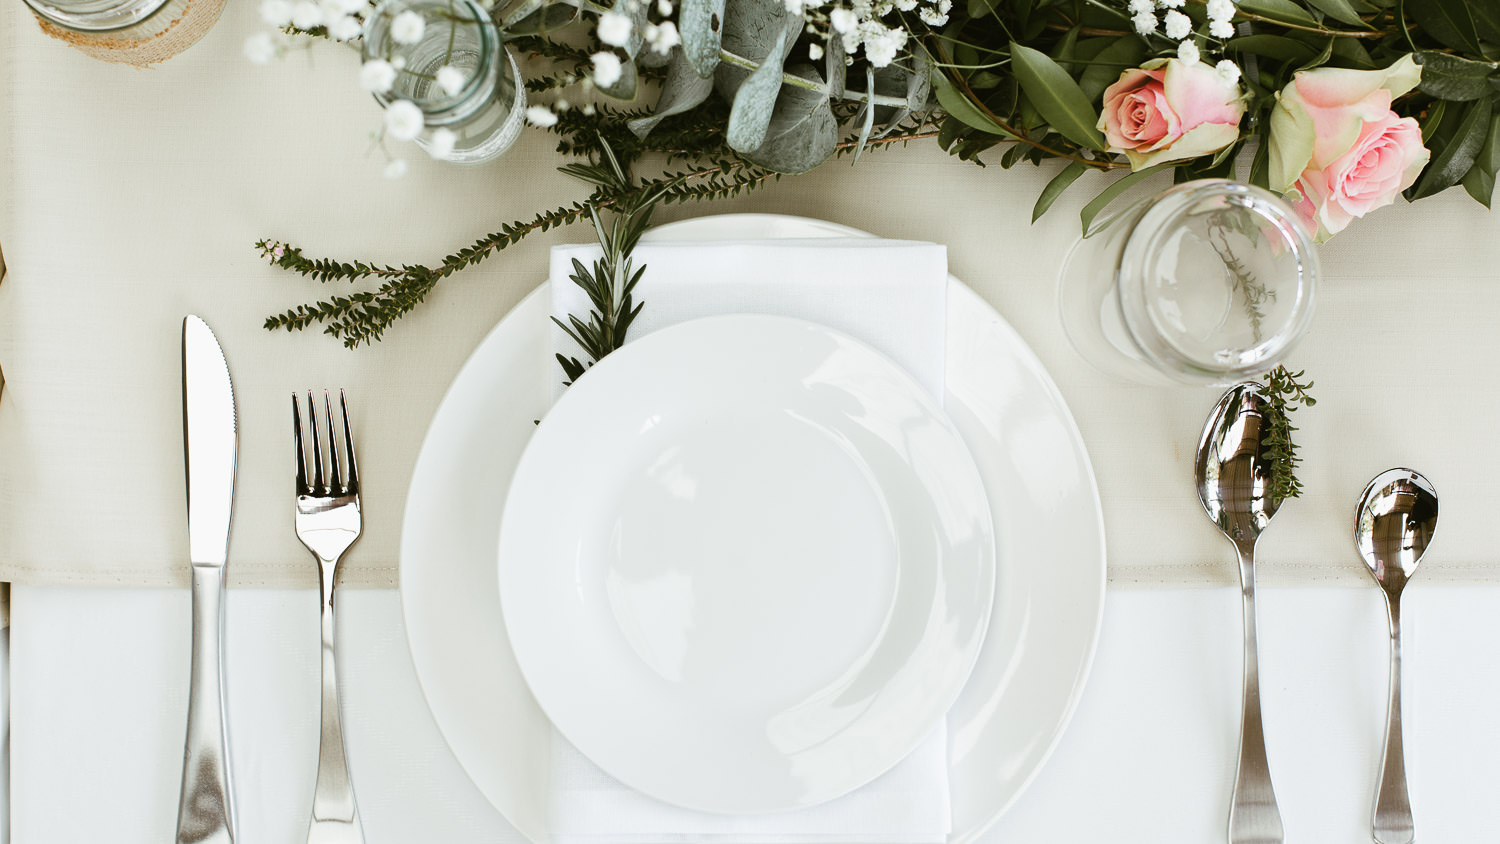 Dinner plate table settings